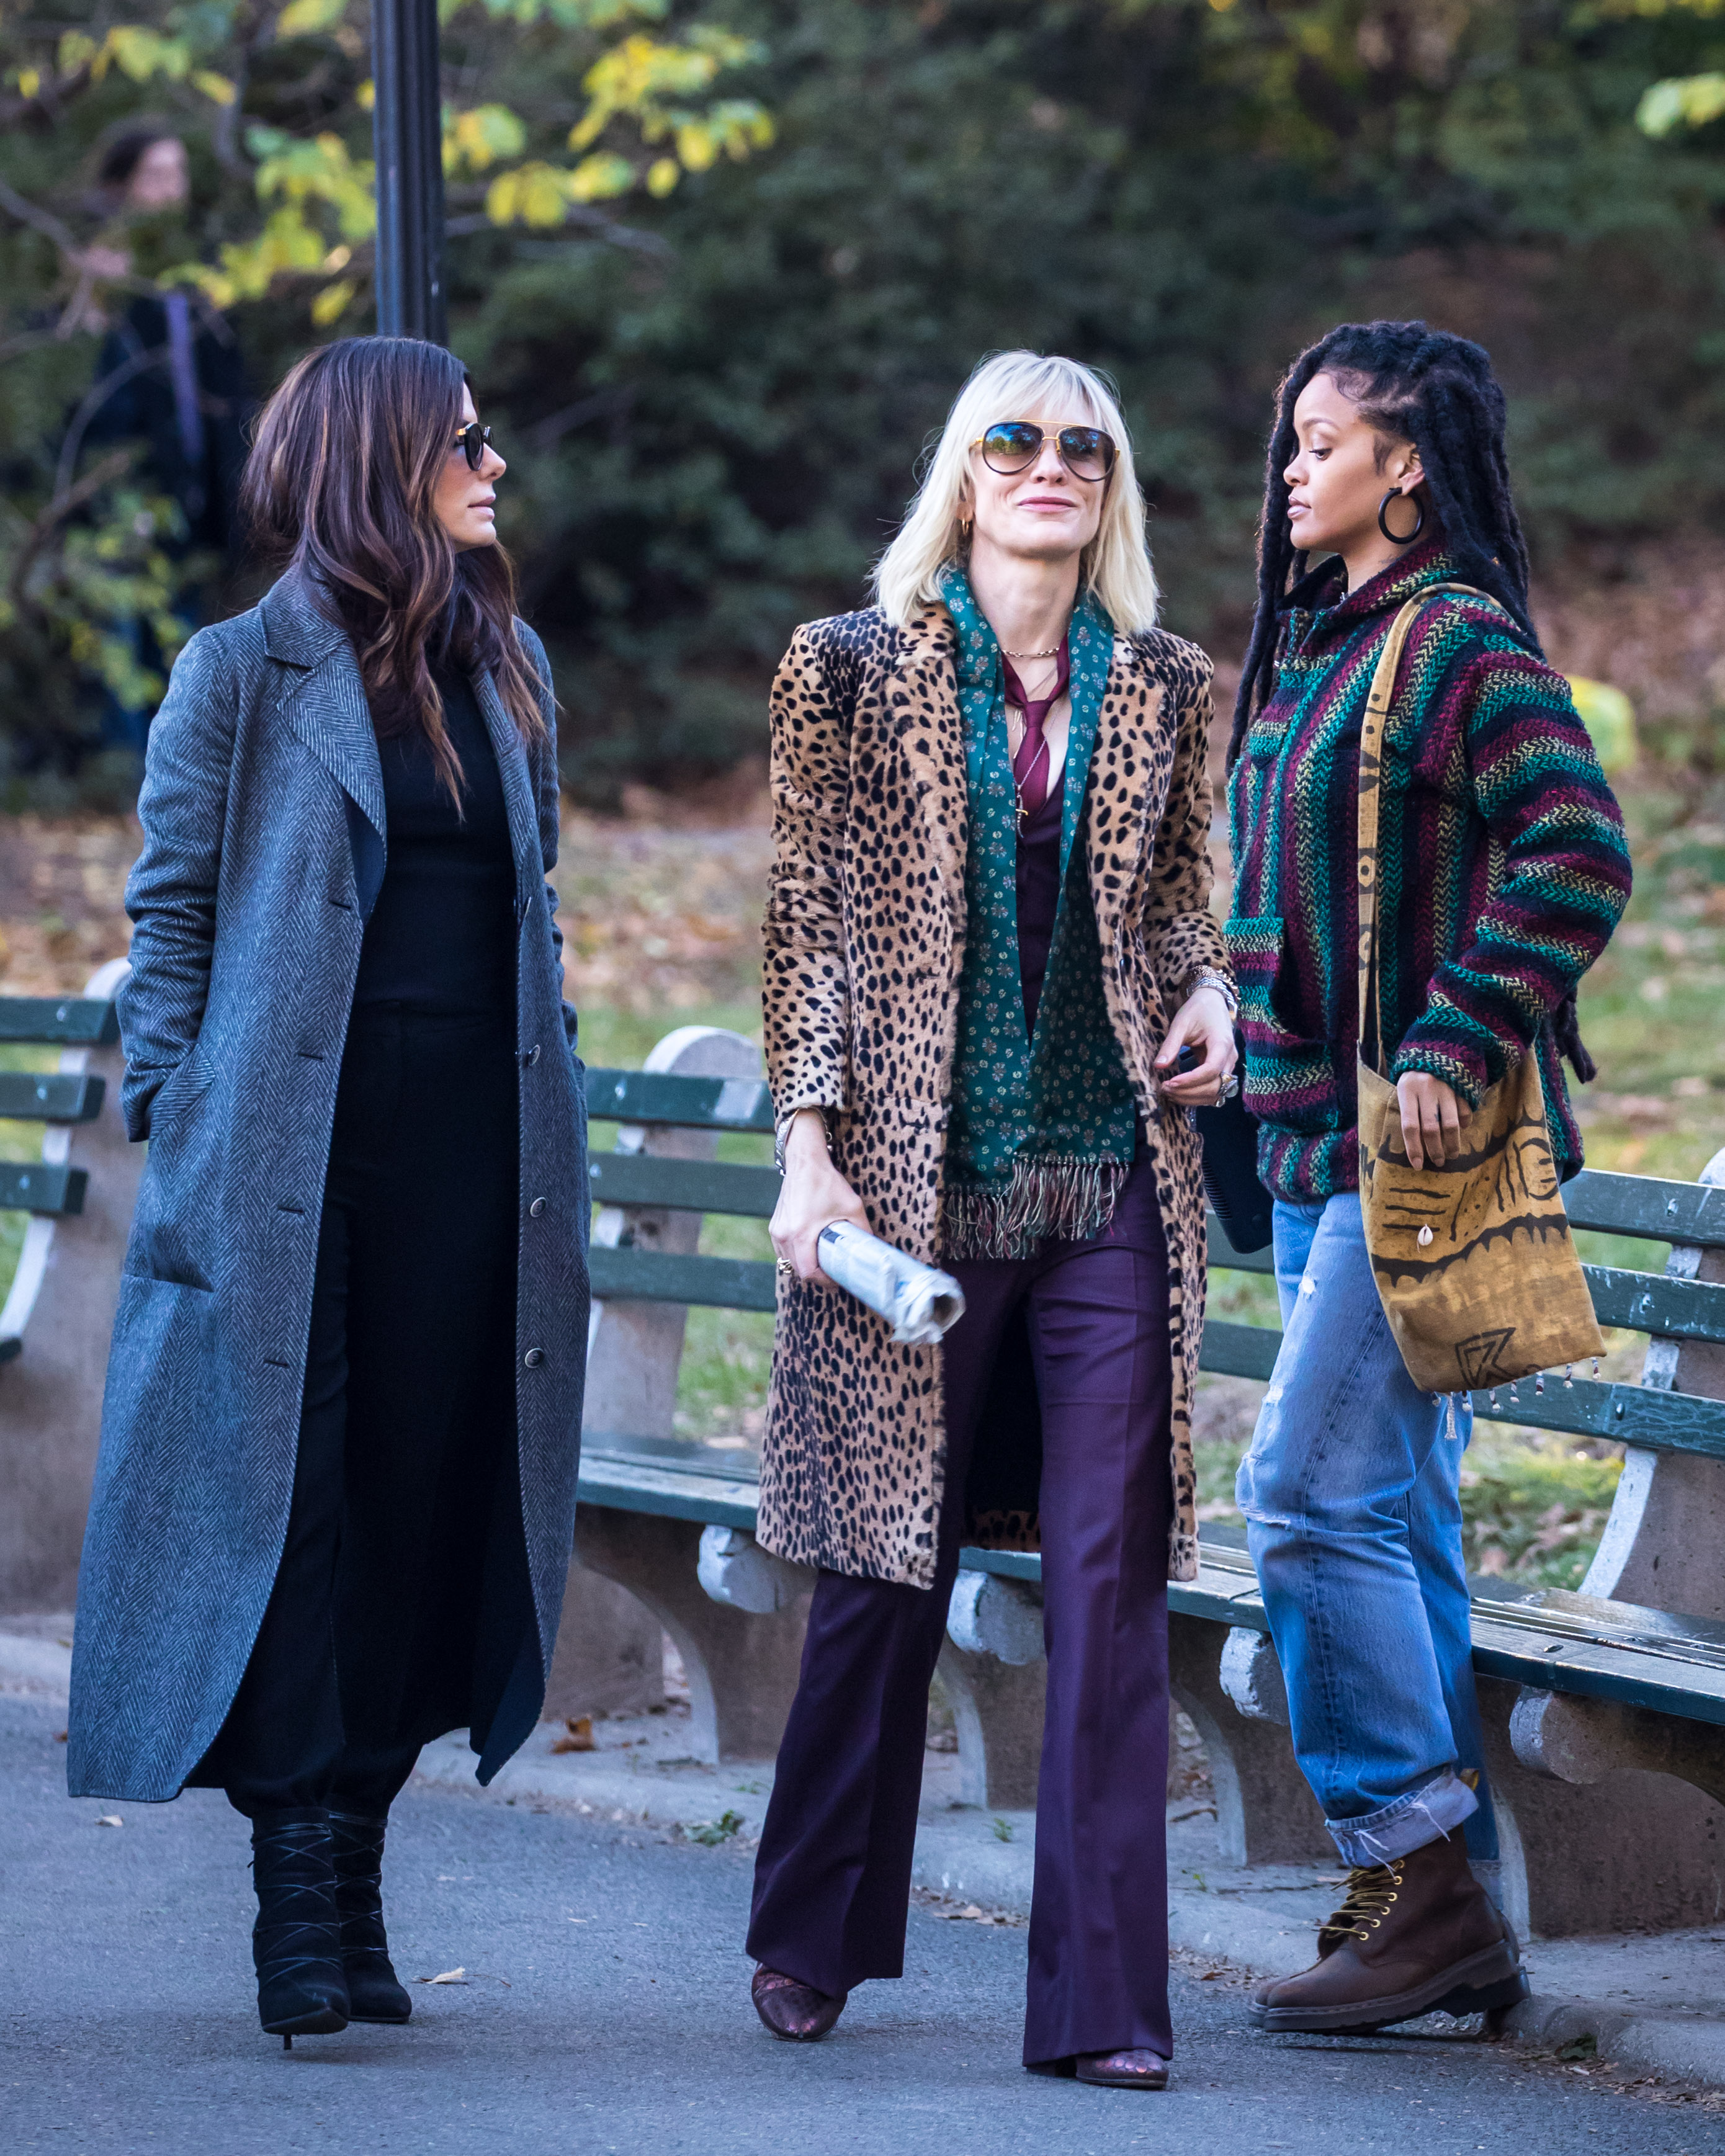 Rihanna, Sandra Bullock, and Cate Blanchett acting together in 'Ocean's Eight'